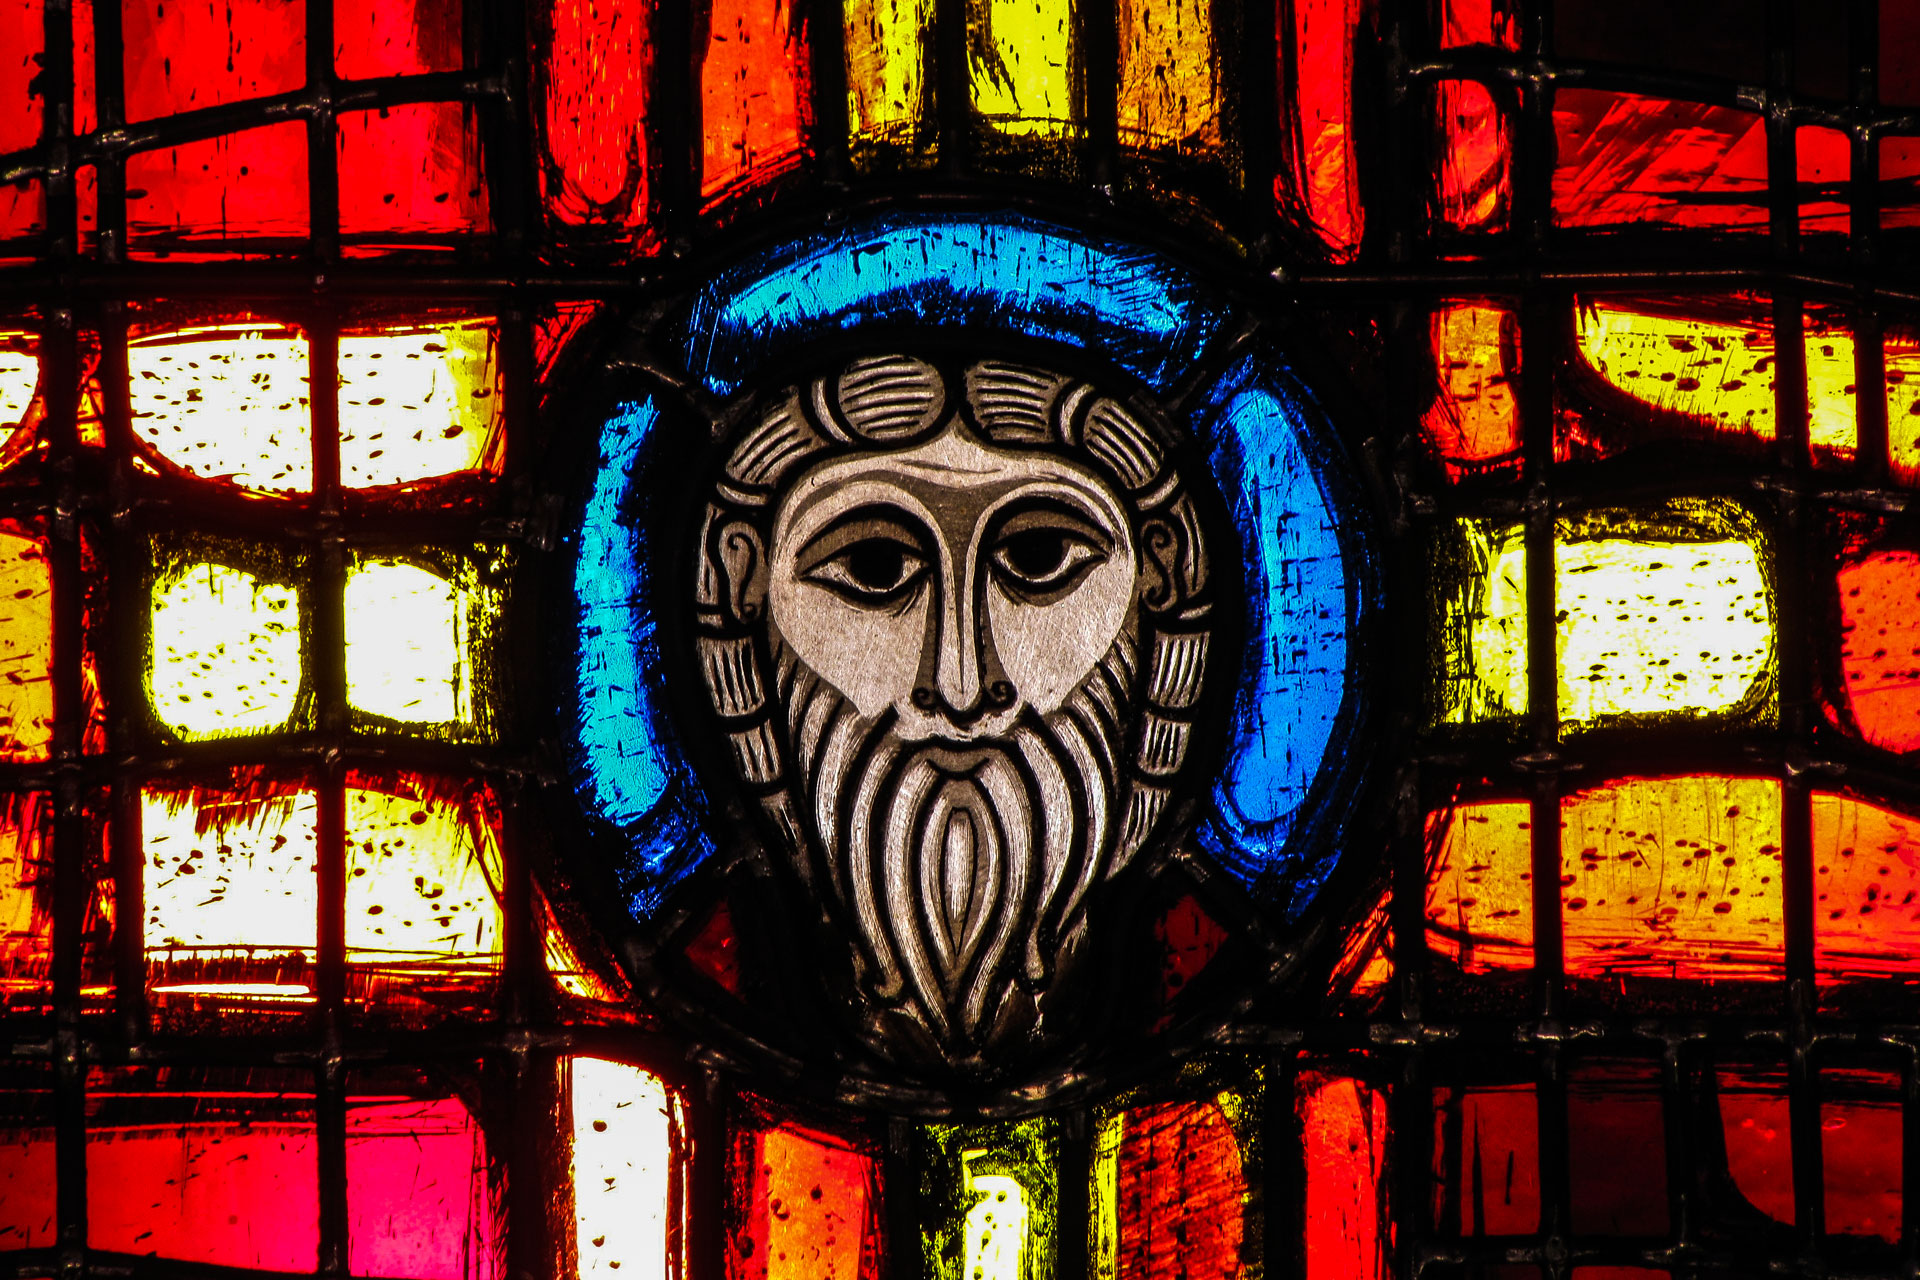 stained-glass-history-01_17m